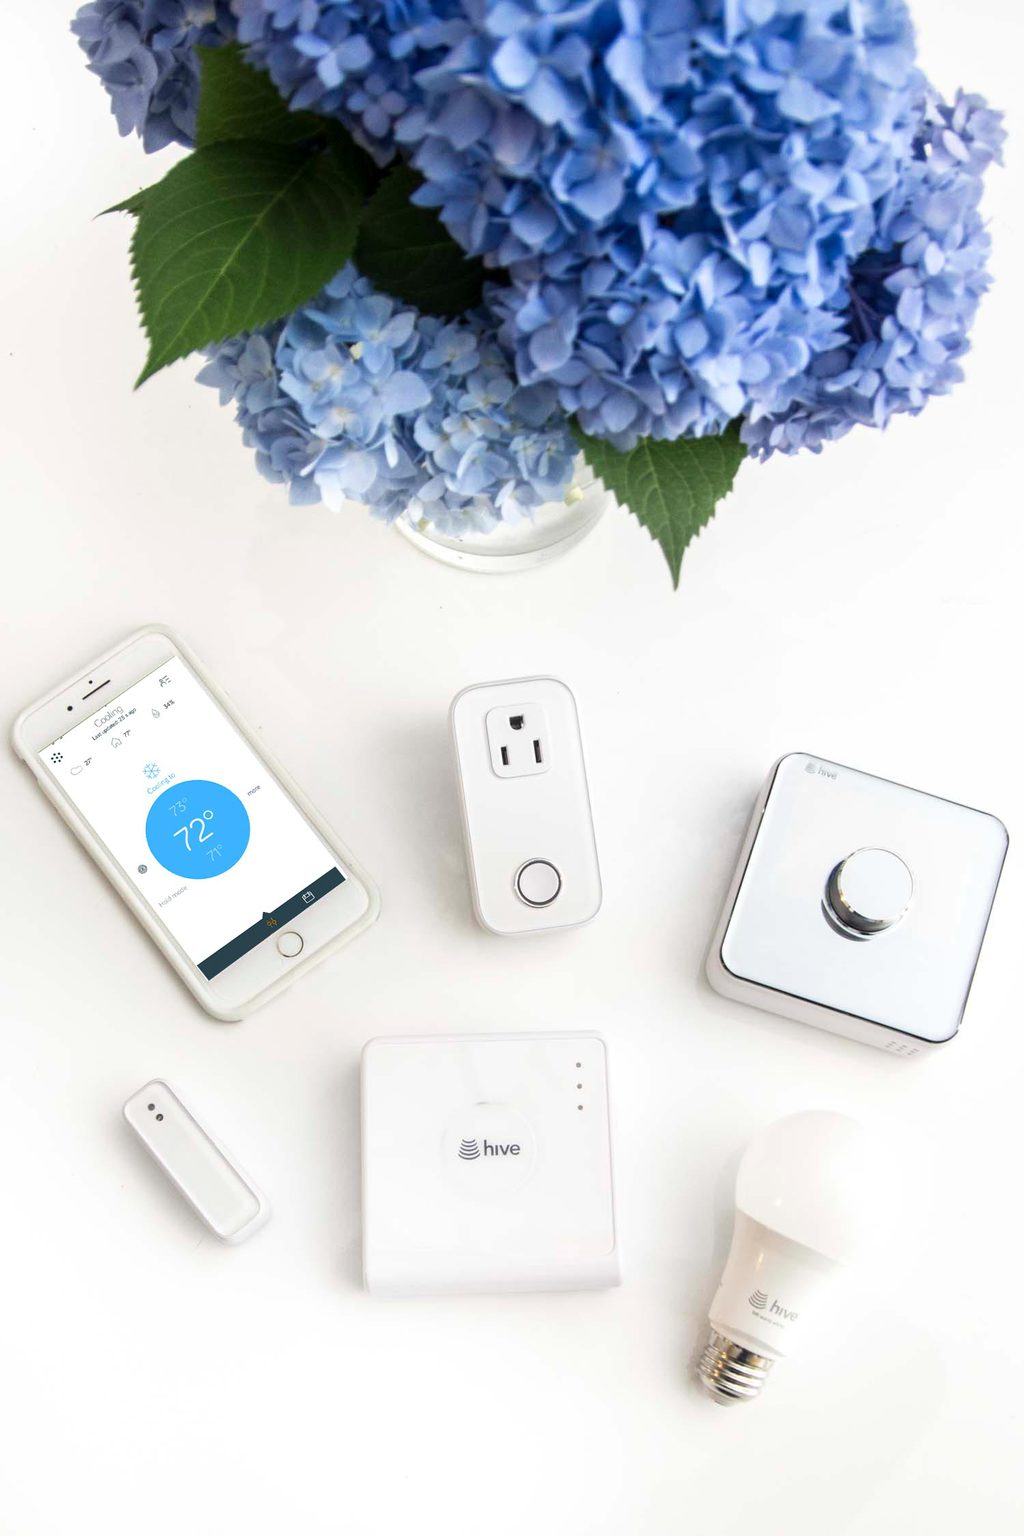 Hive smart home devices on Thou Swell @thouswellblog